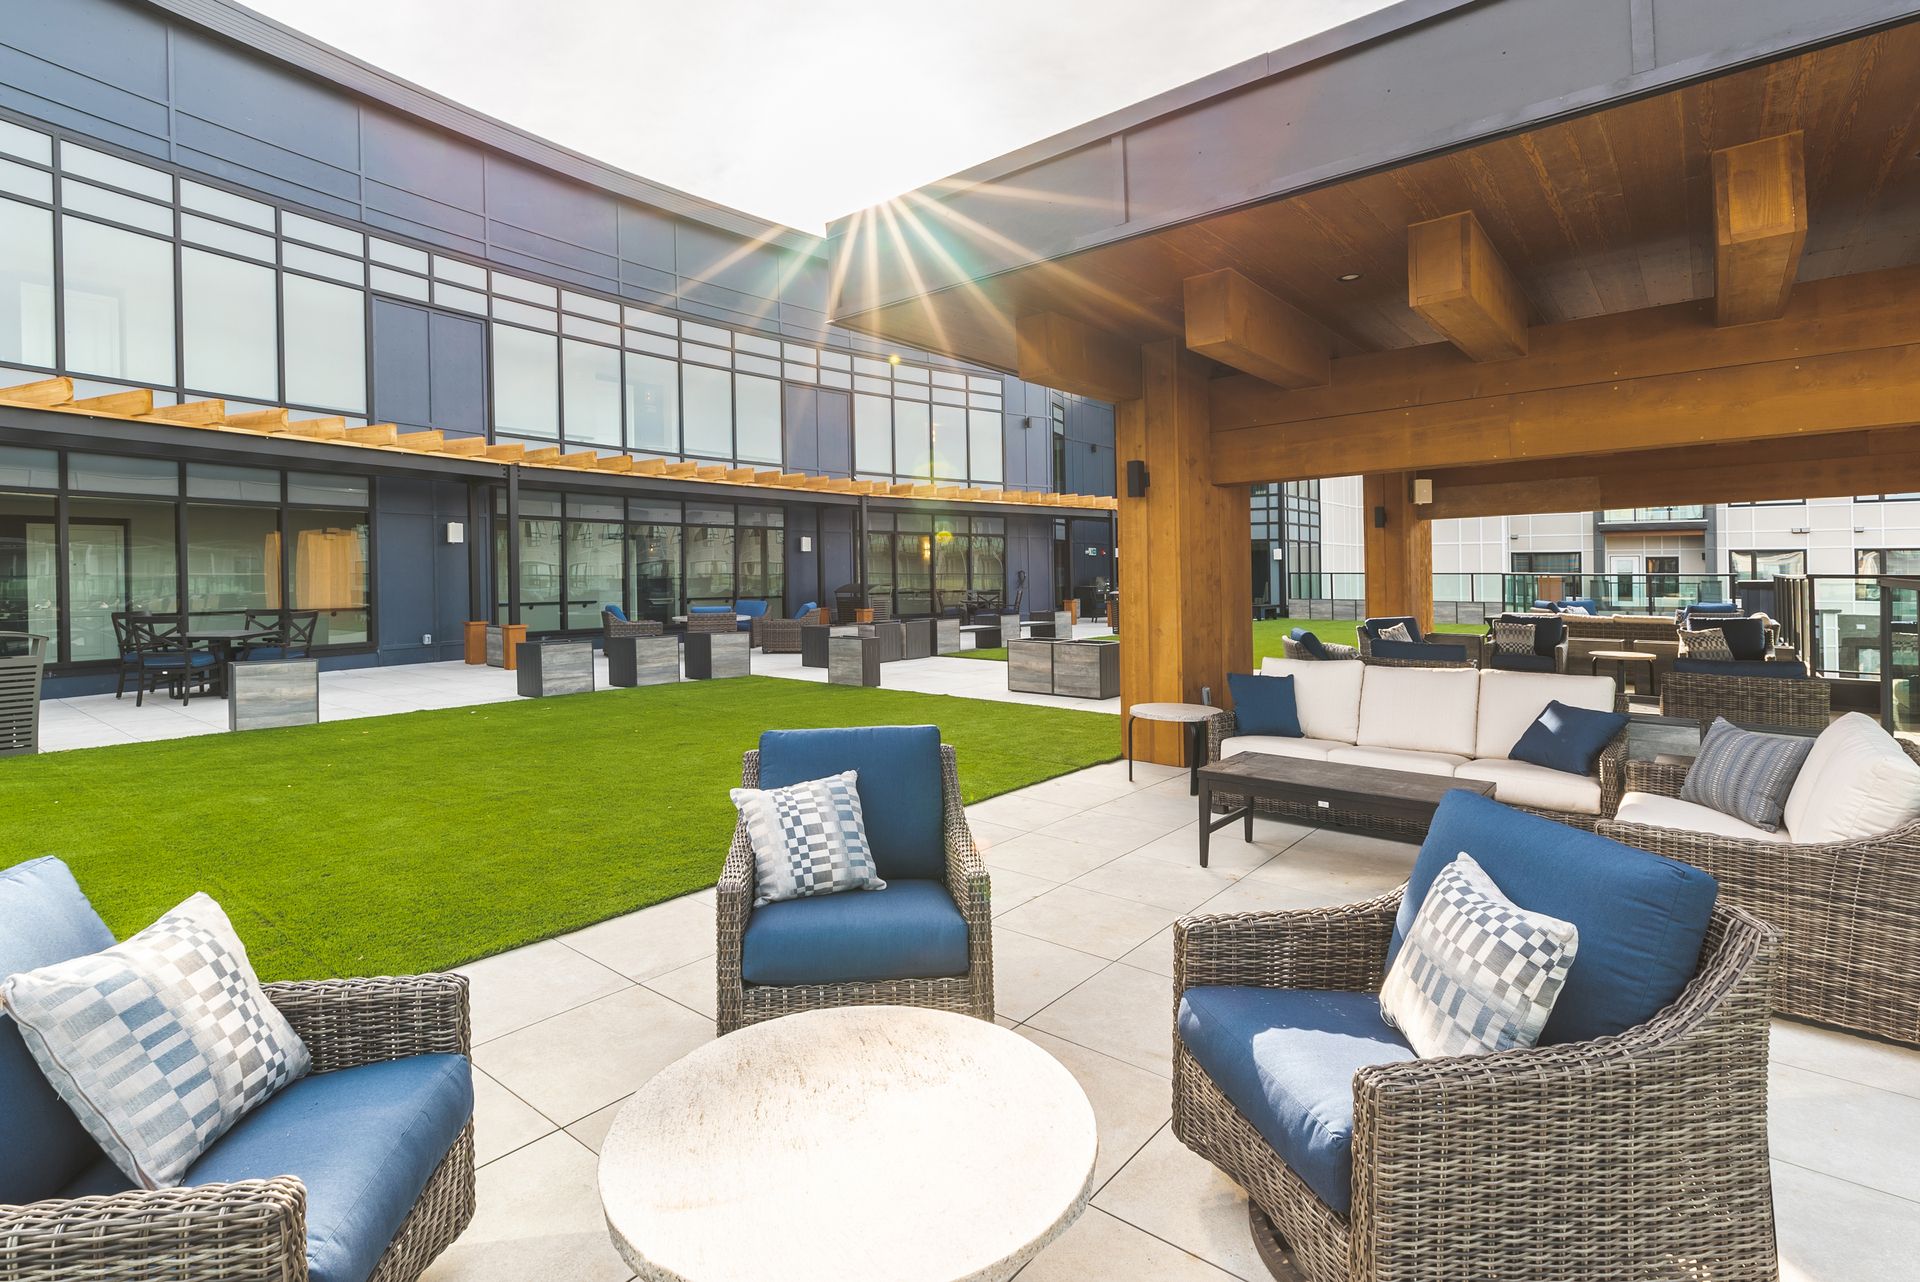 """Located in Regina, the capital of Saskatchewan, Canada, the Williston in Harbour Landing is a gorgeous, luxury apartment complex for senior living. The housing complex offers several amenities, including shops, a hair salon & nail spa, fitness centre, sports pub, and wonderful outdoor areas including the 9,000 square foot rooftop terrace, which uses Archatrak's 24""""x24″ porcelain pavers in color Calstone, as well as MIXY 60 planters and planter benches. The community gathering space cleverly uses green turf to give the rooftop a 'green' feel."""